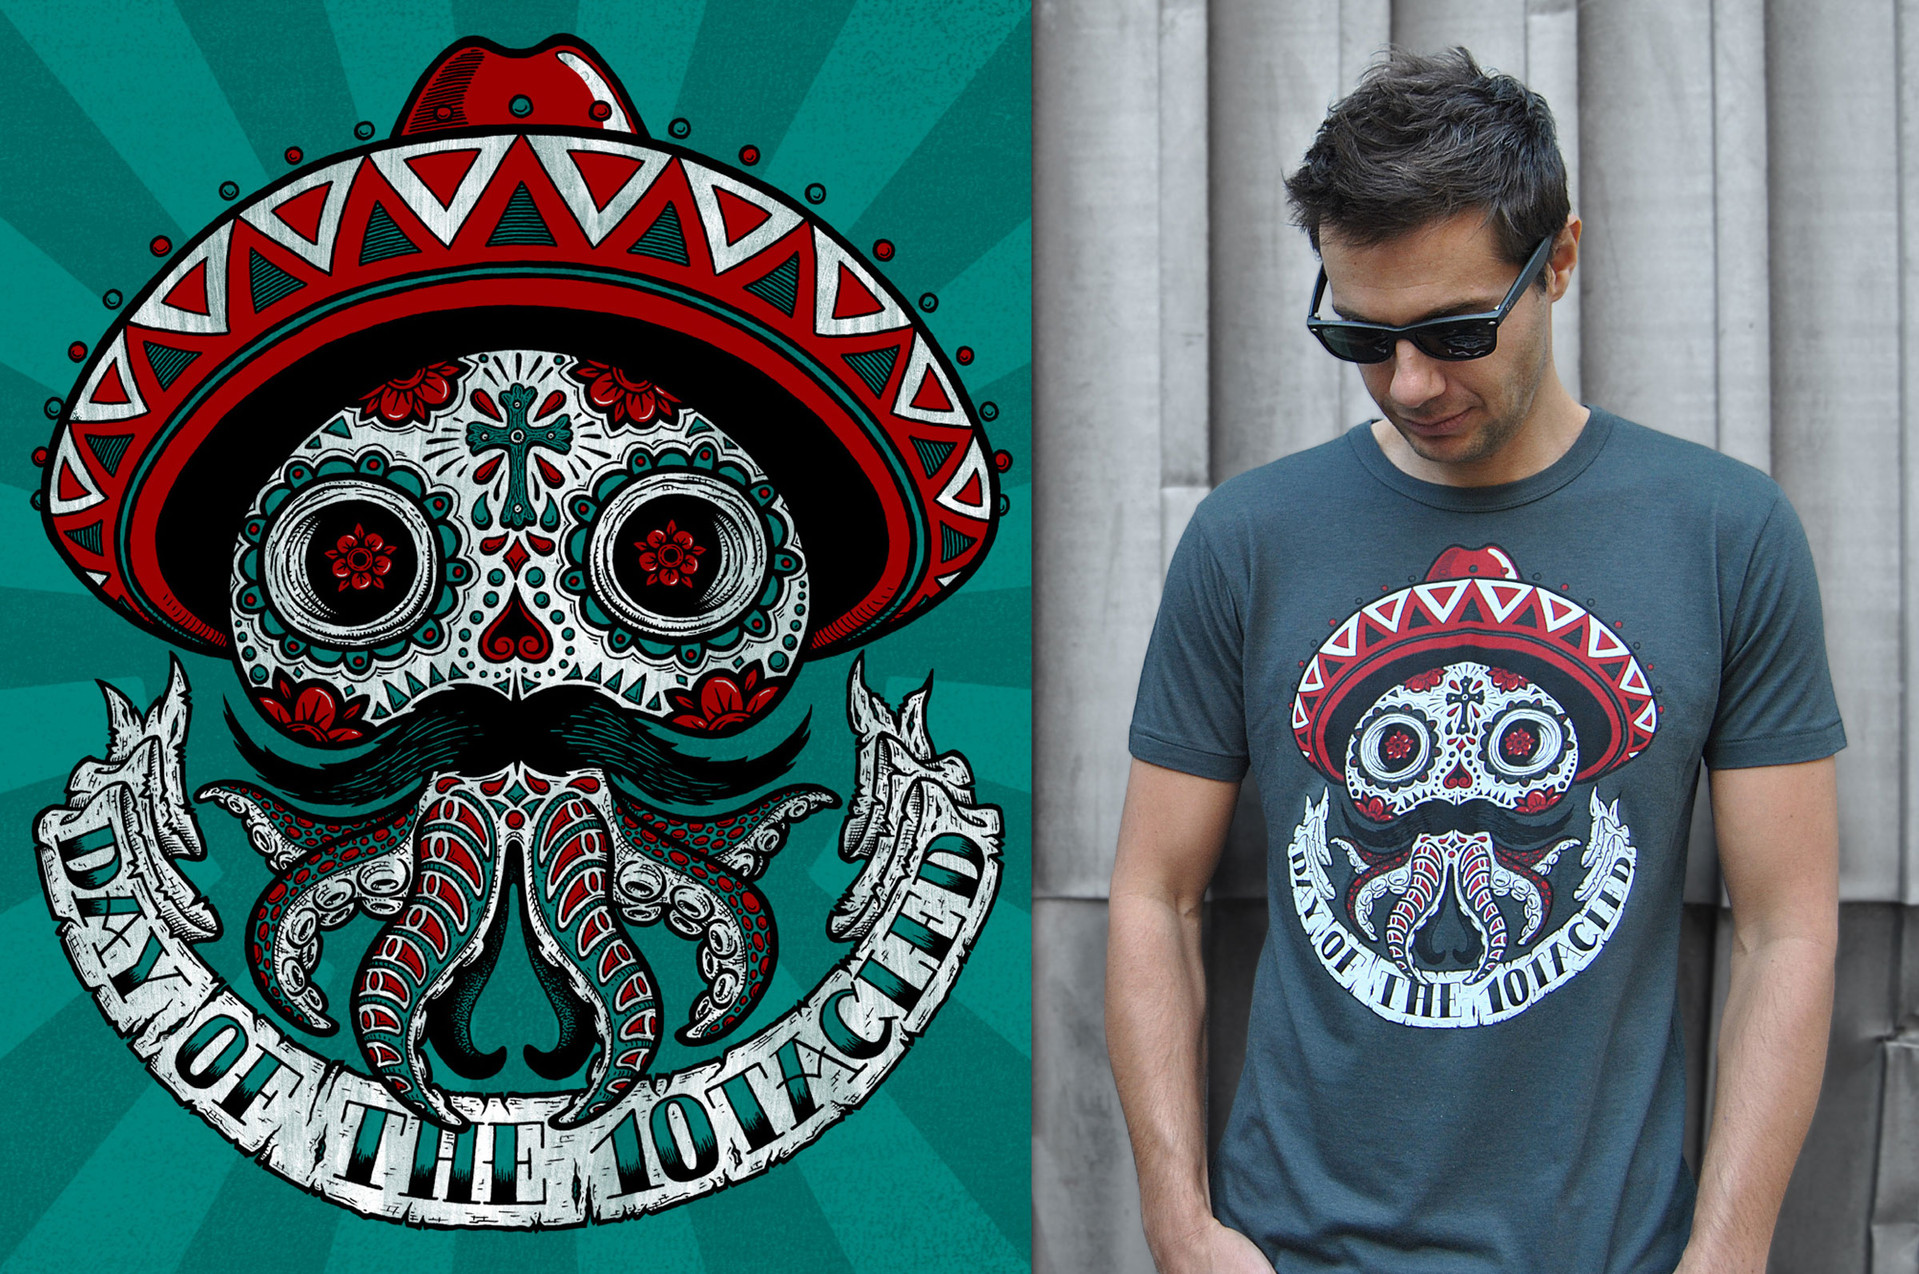 Calavera t-shirt design for 10tacled